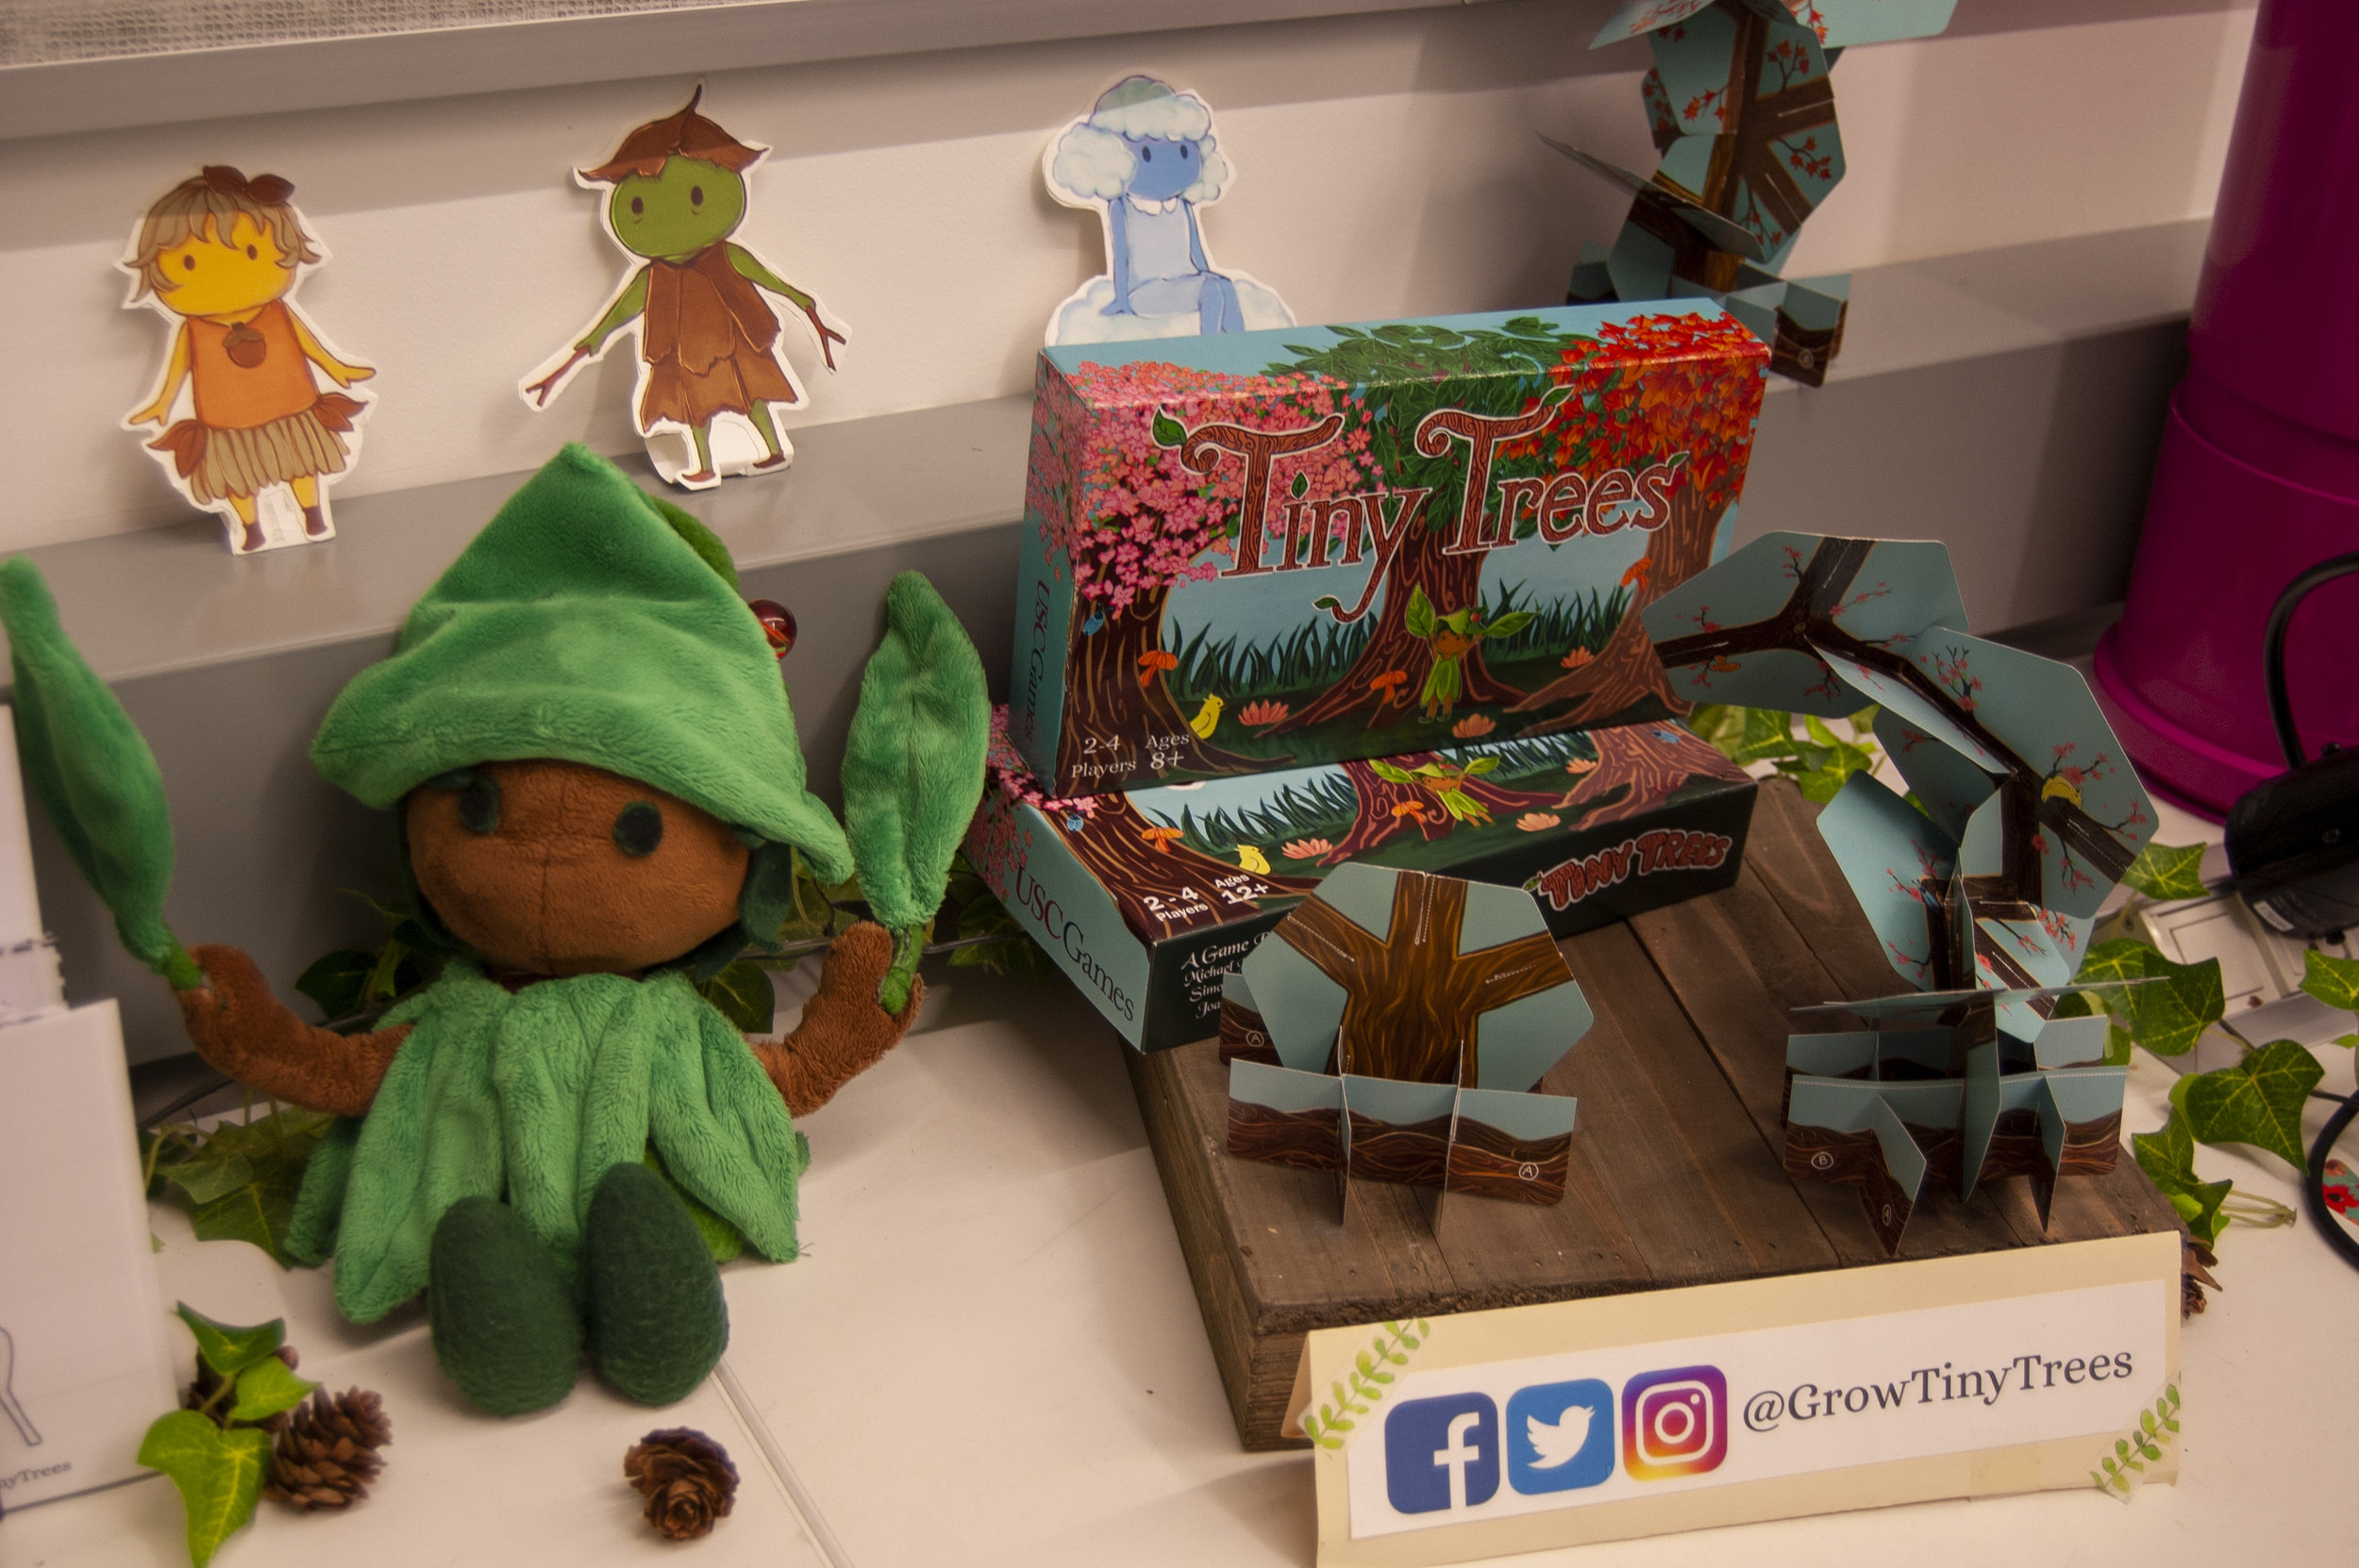 Game pieces for the board game Tiny Trees, IndieCade, 2018